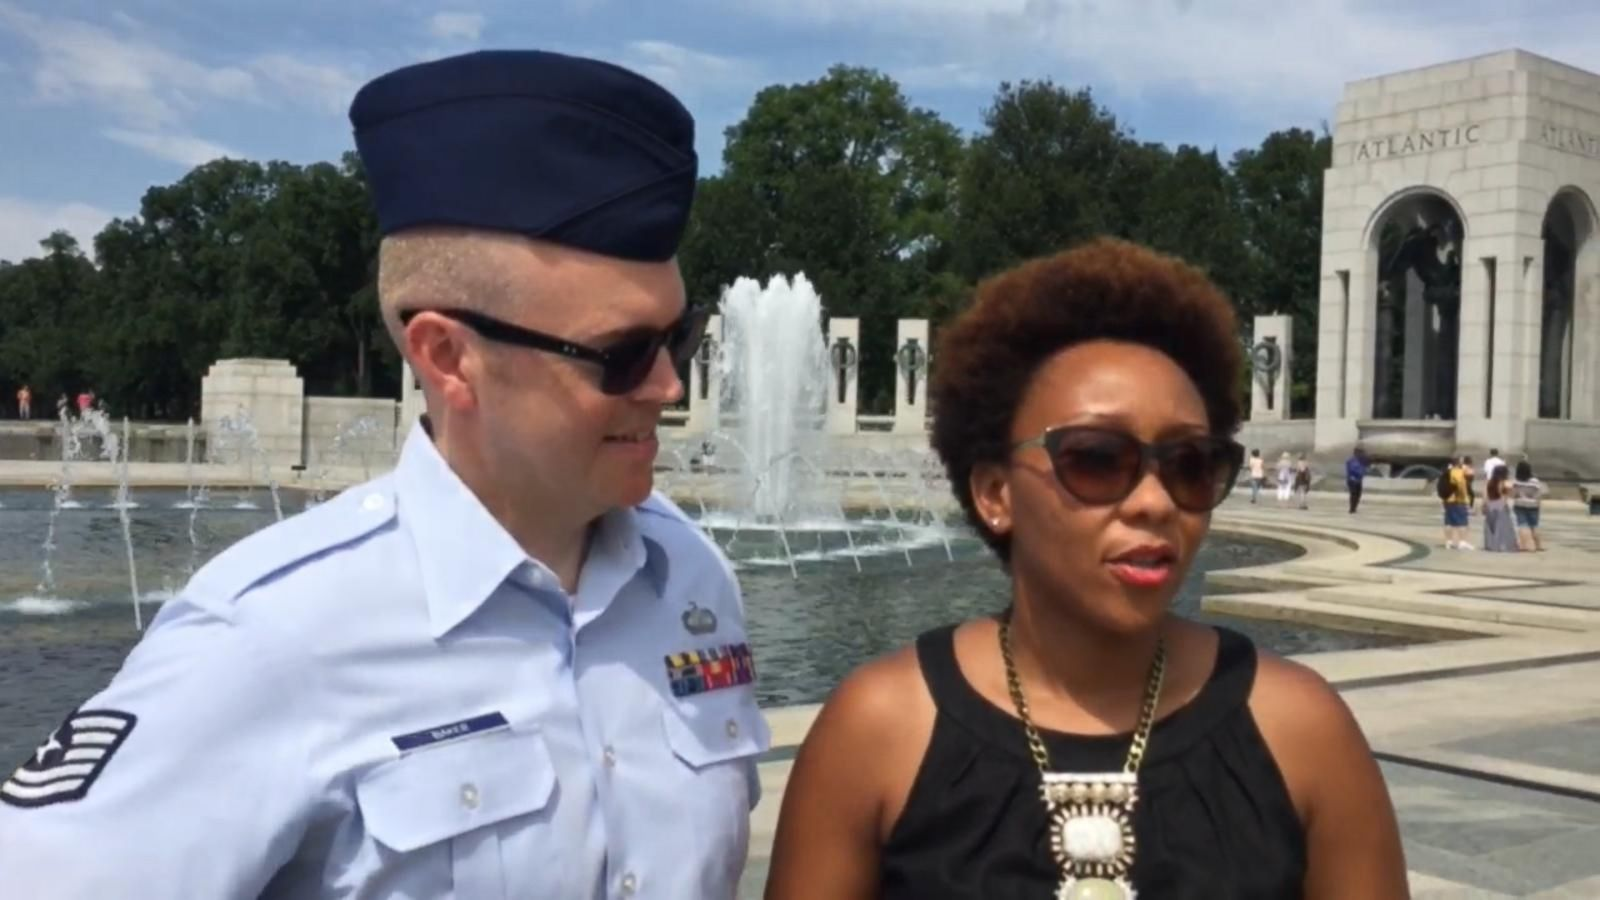 VIDEO: National Park Service Welcomes New U.S. Citizens